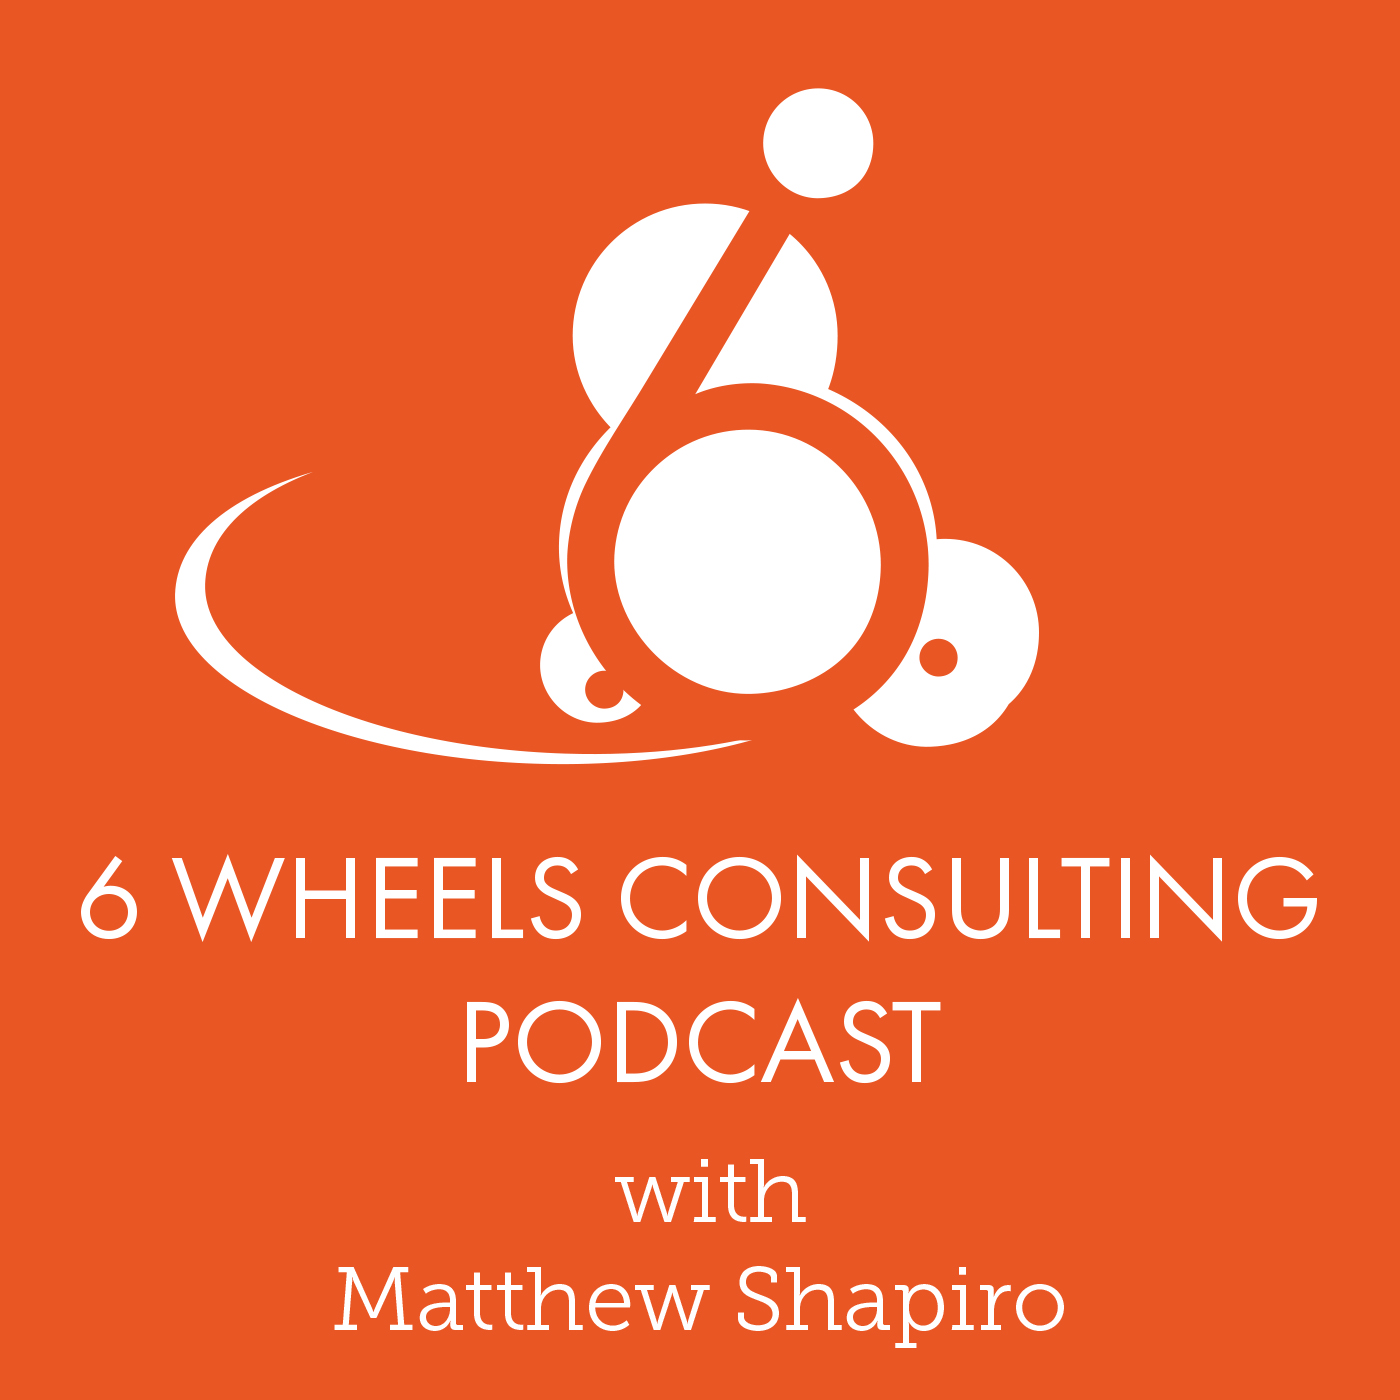 PHOTO: Here is the logo for the 6 Wheels Consulting Podcast. Is a white version of the six wheels logo on an orange background. The text reads 6 Wheels Podcast with Matthew Shapiro.jpg